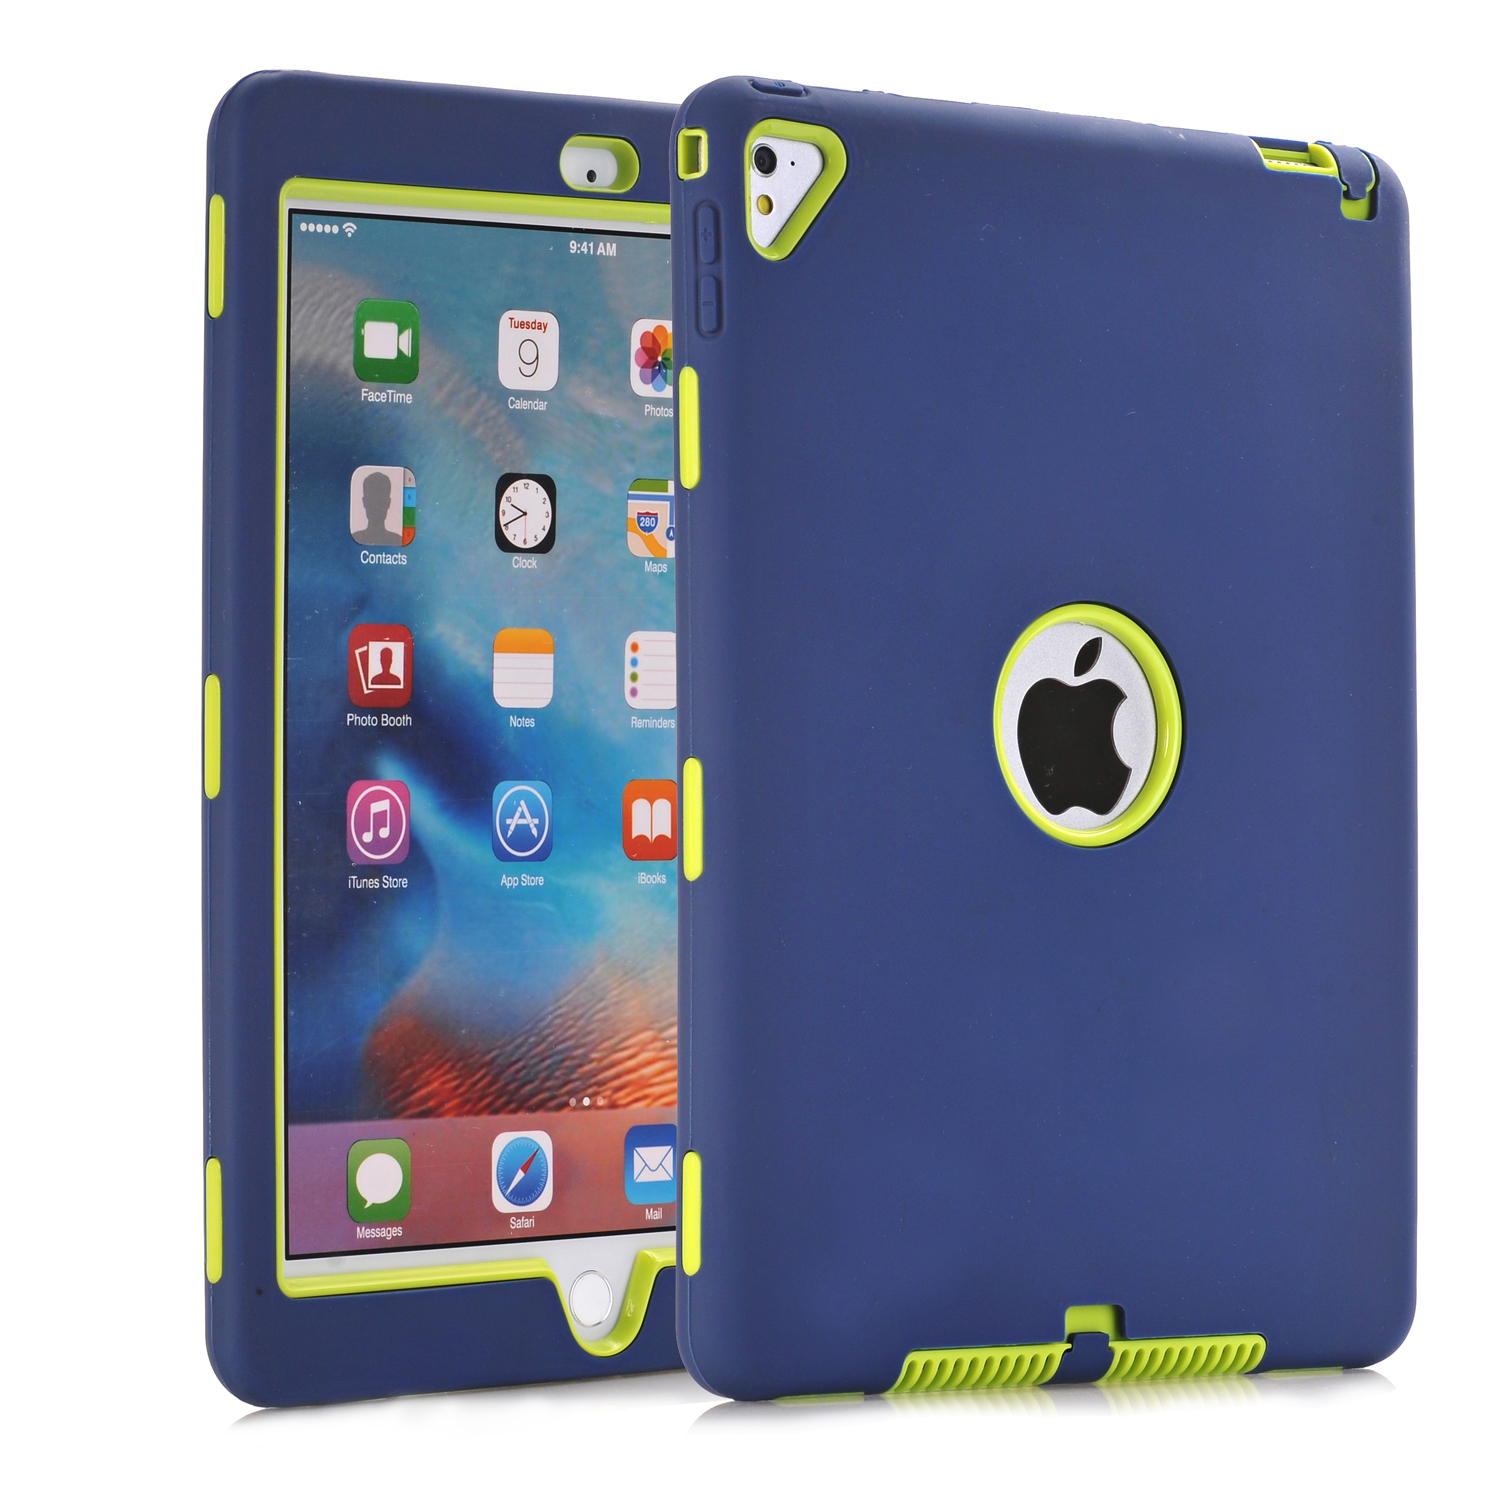 Ar gyfer iPad Pro 9.7, Ar gyfer iPad Air 2 Case Retina Kids Baby Safe Armour Shockproof Dyletswydd Trwm Silicôn Clawr Achos Caled Ar gyfer iPad Air2